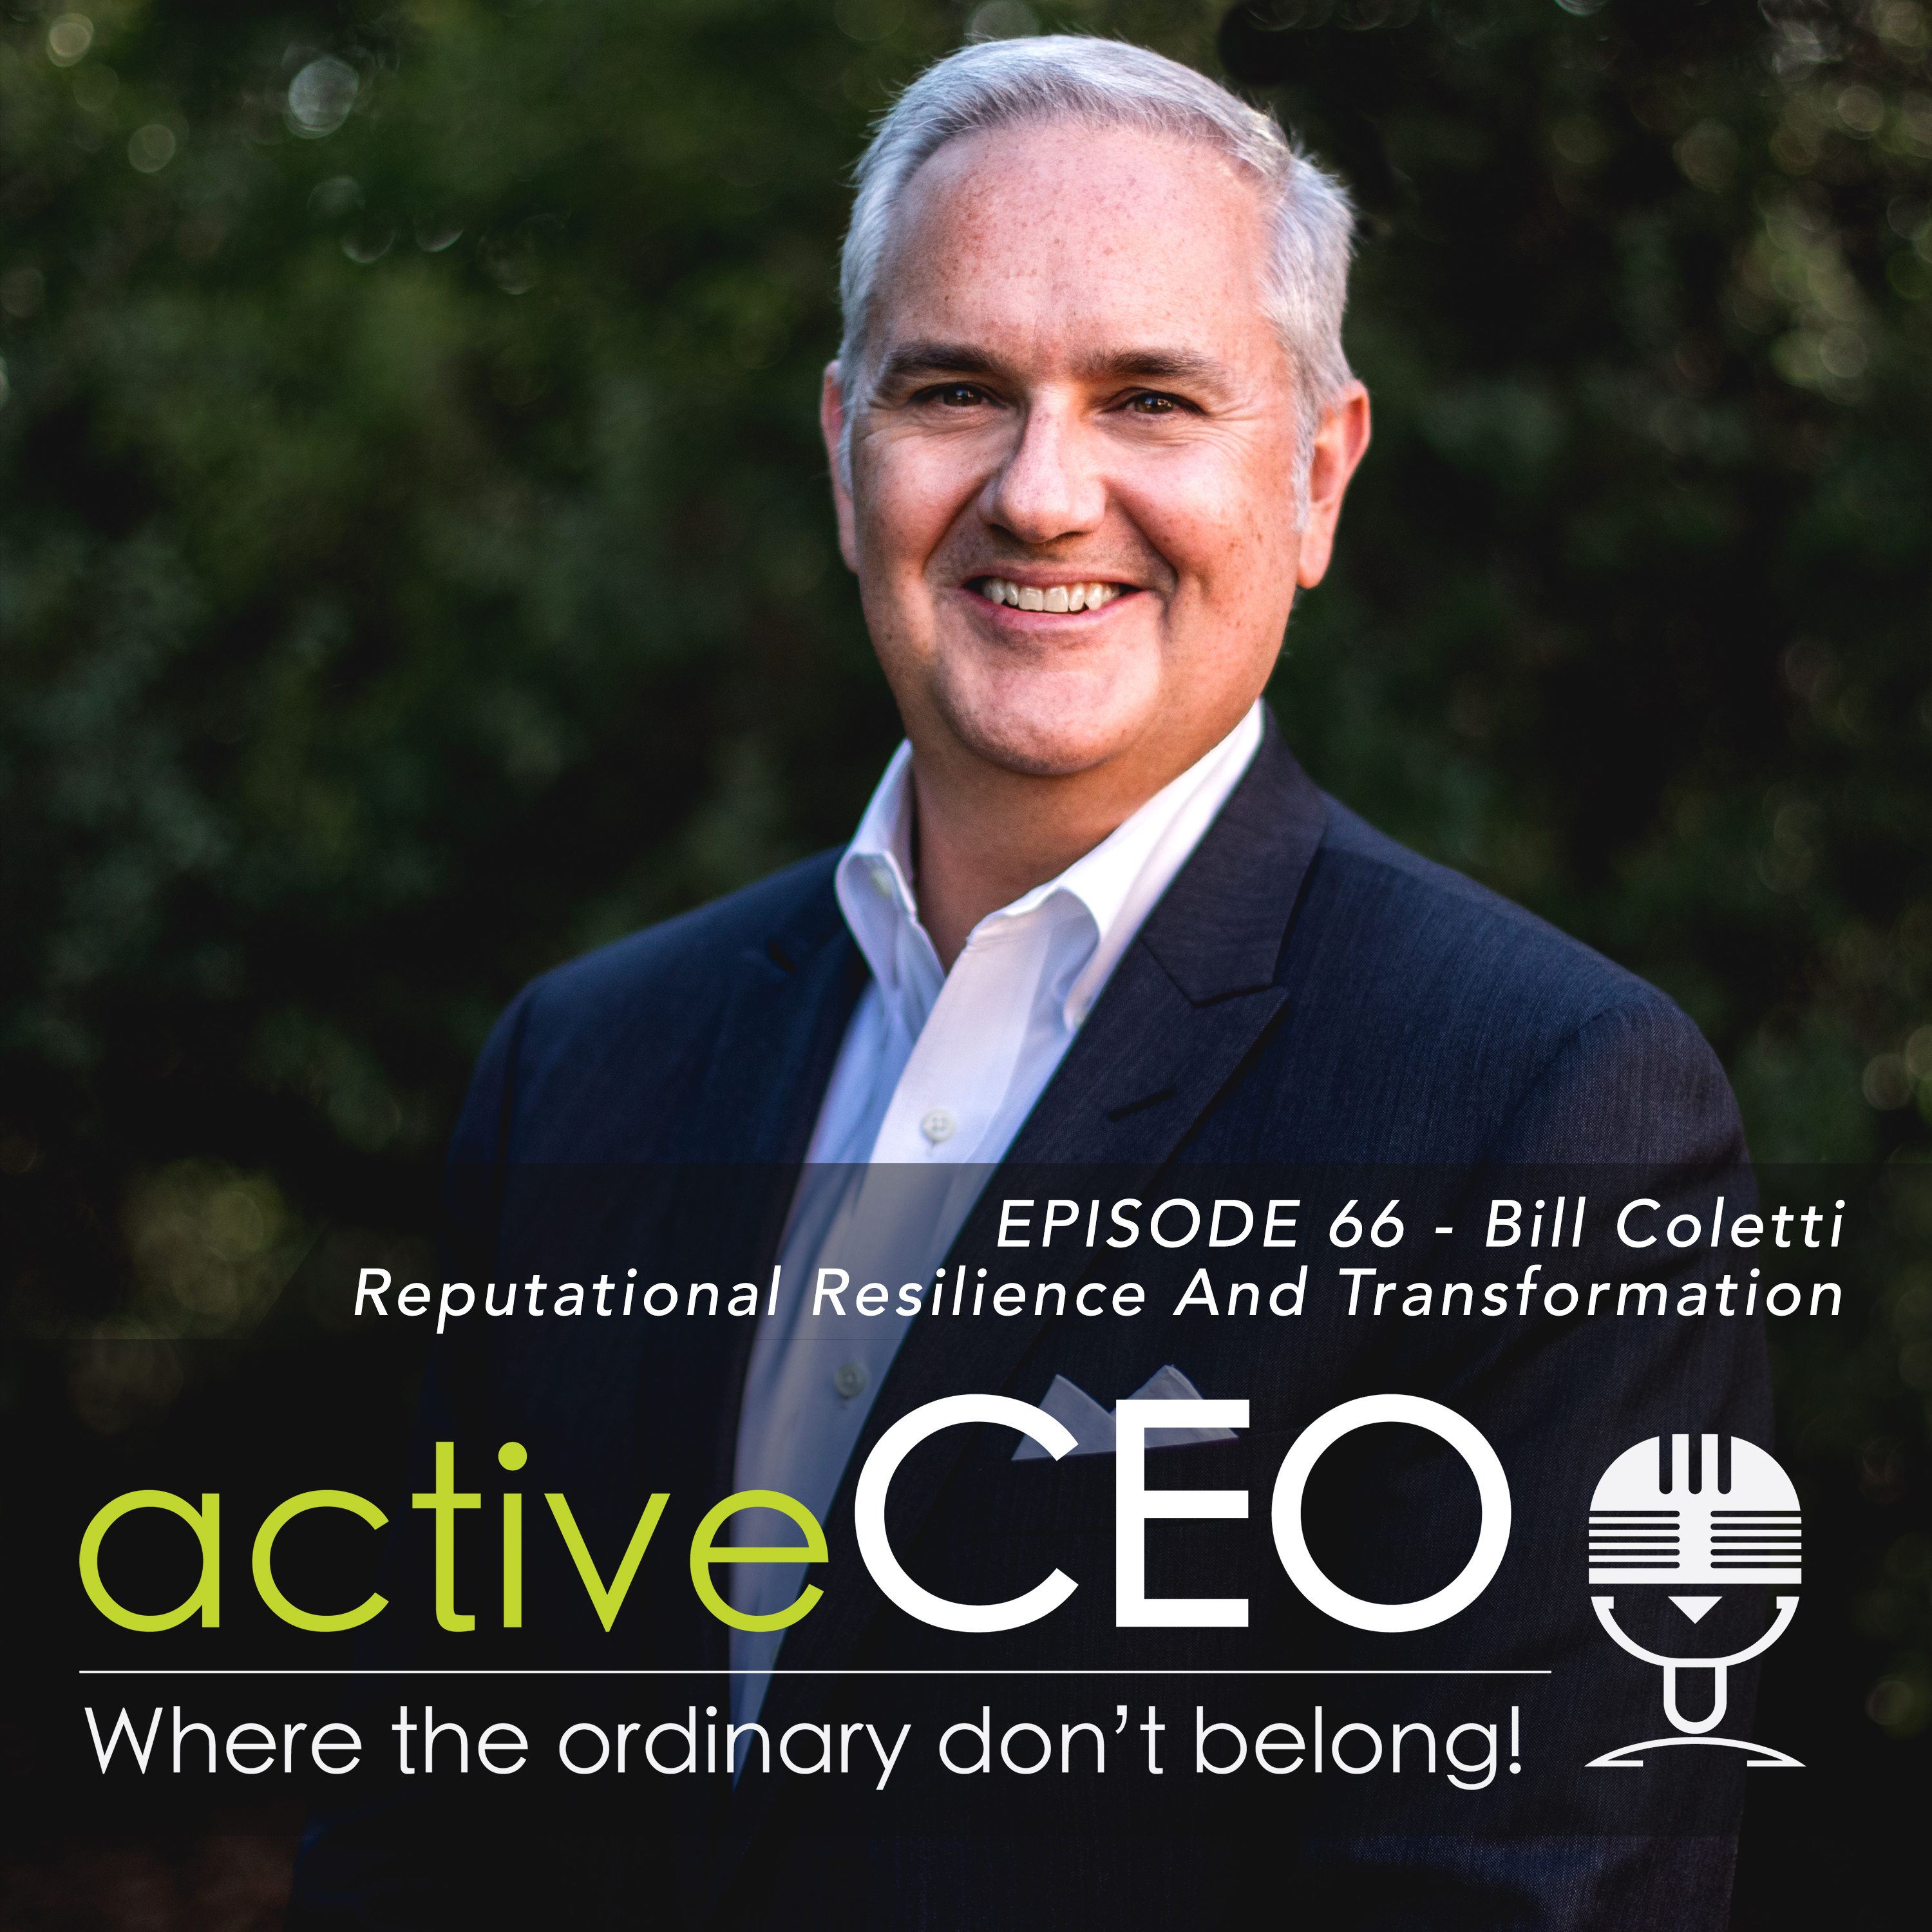 active CEO Podcast Bill Coletti KIth reputational resilience and transformation